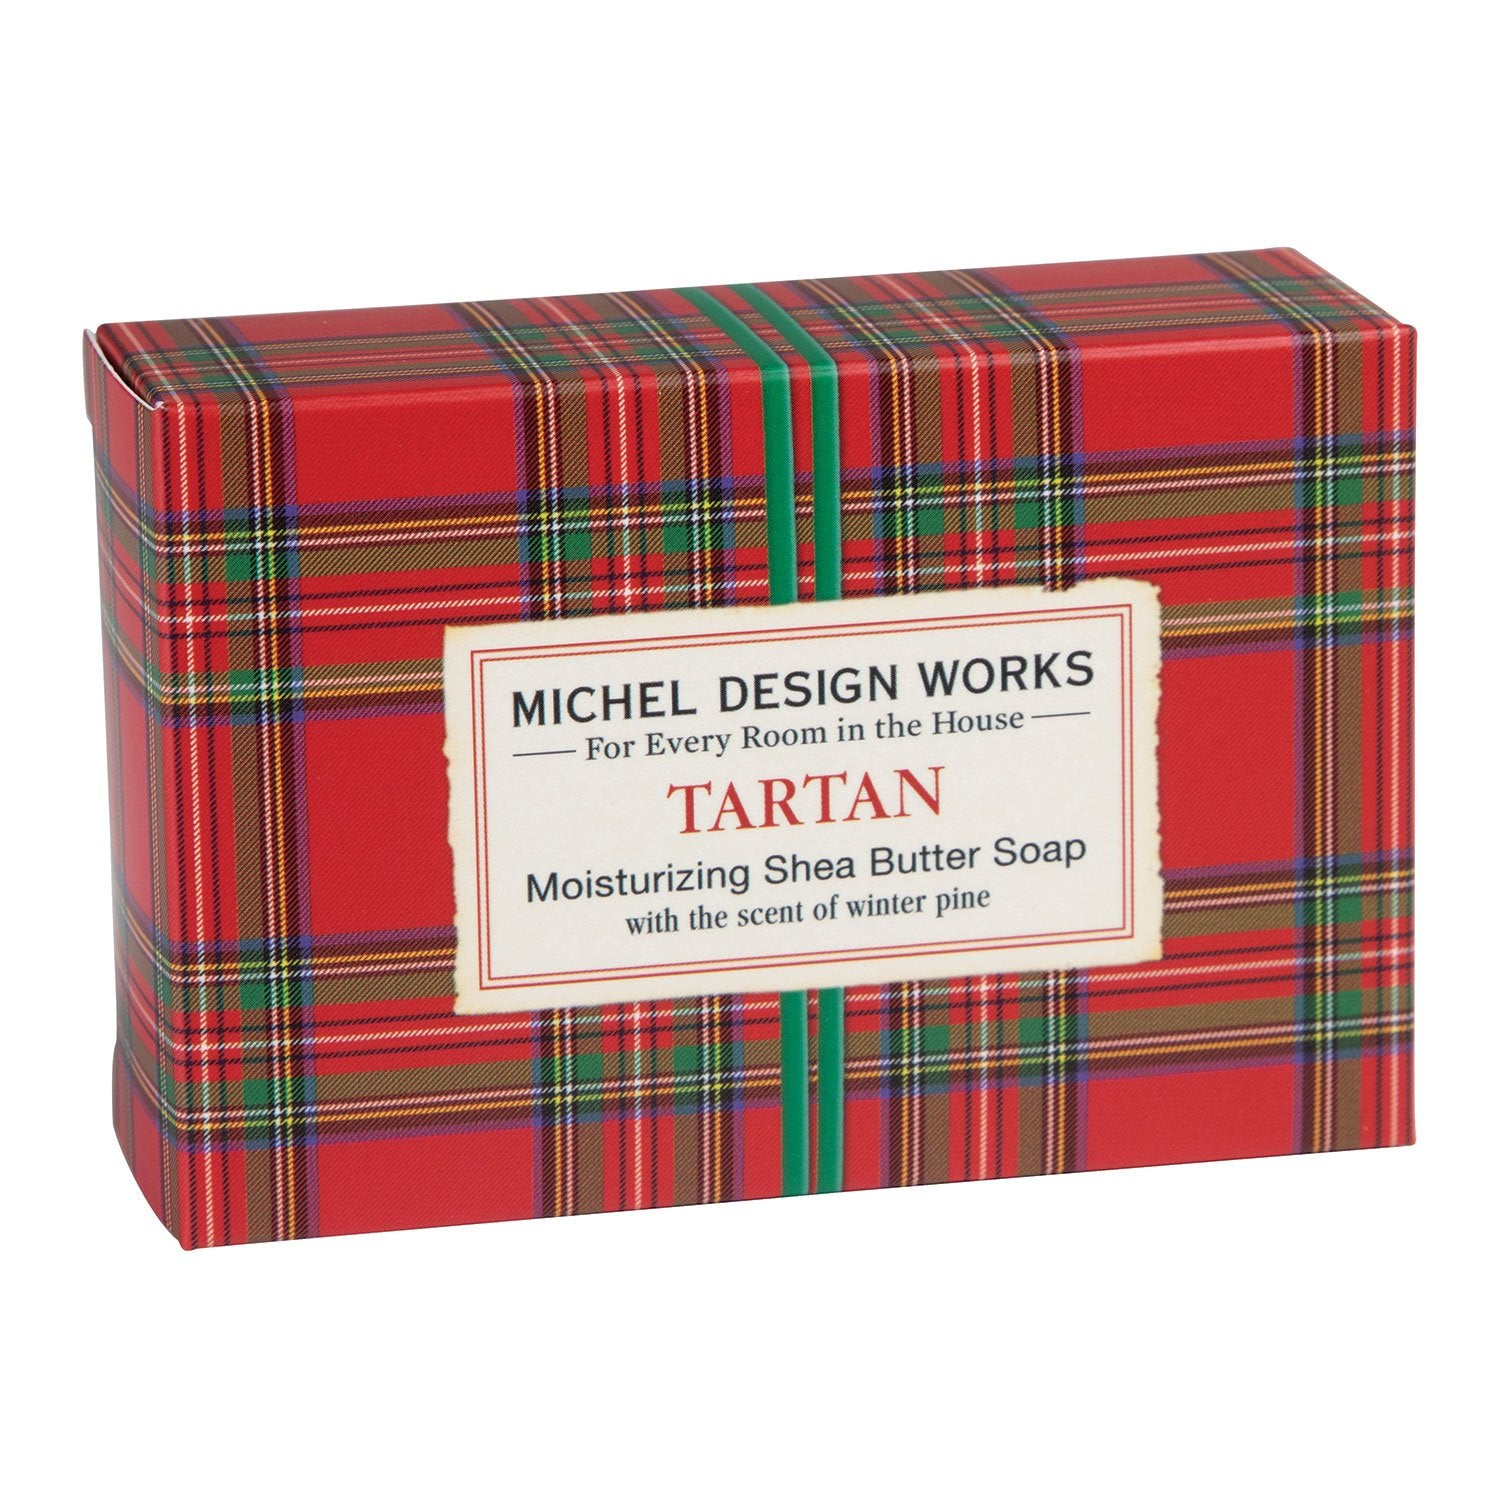 Tartan 4.5 oz. Boxed Soap